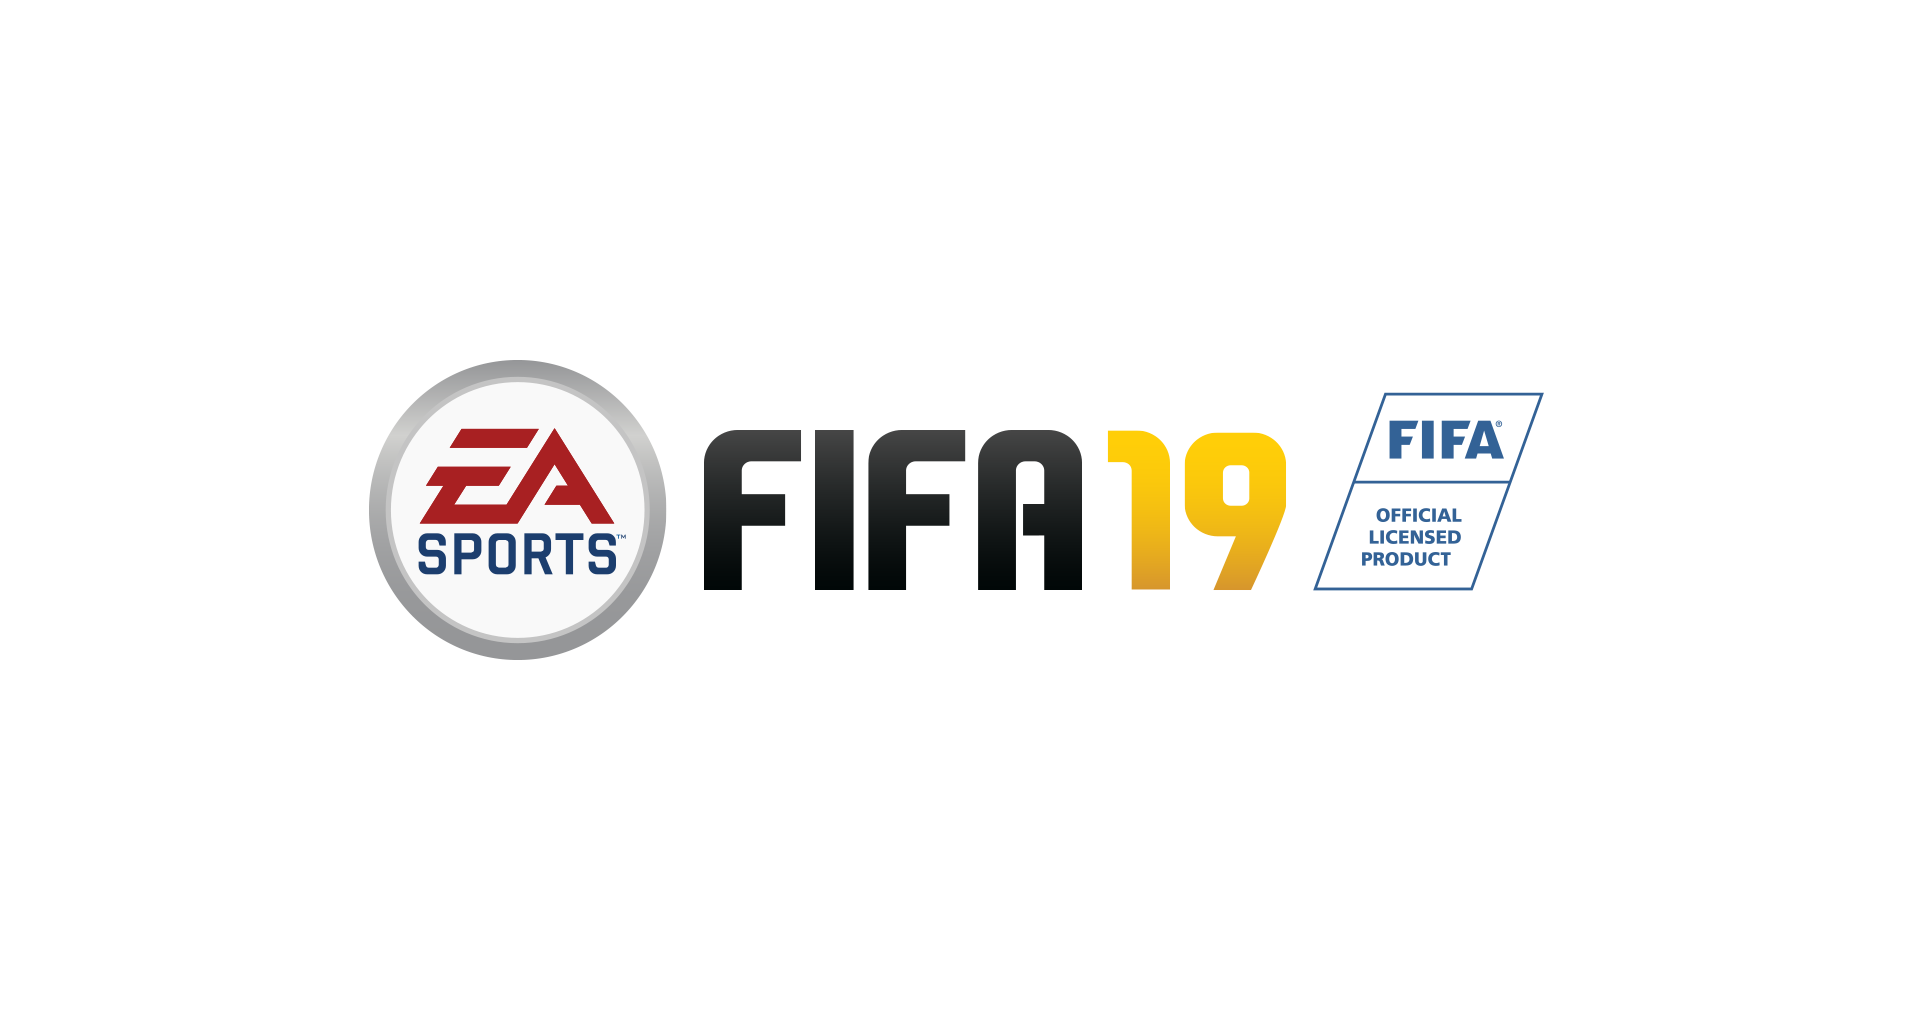 Ea Sports Fifa 13 Free Download For Mobile